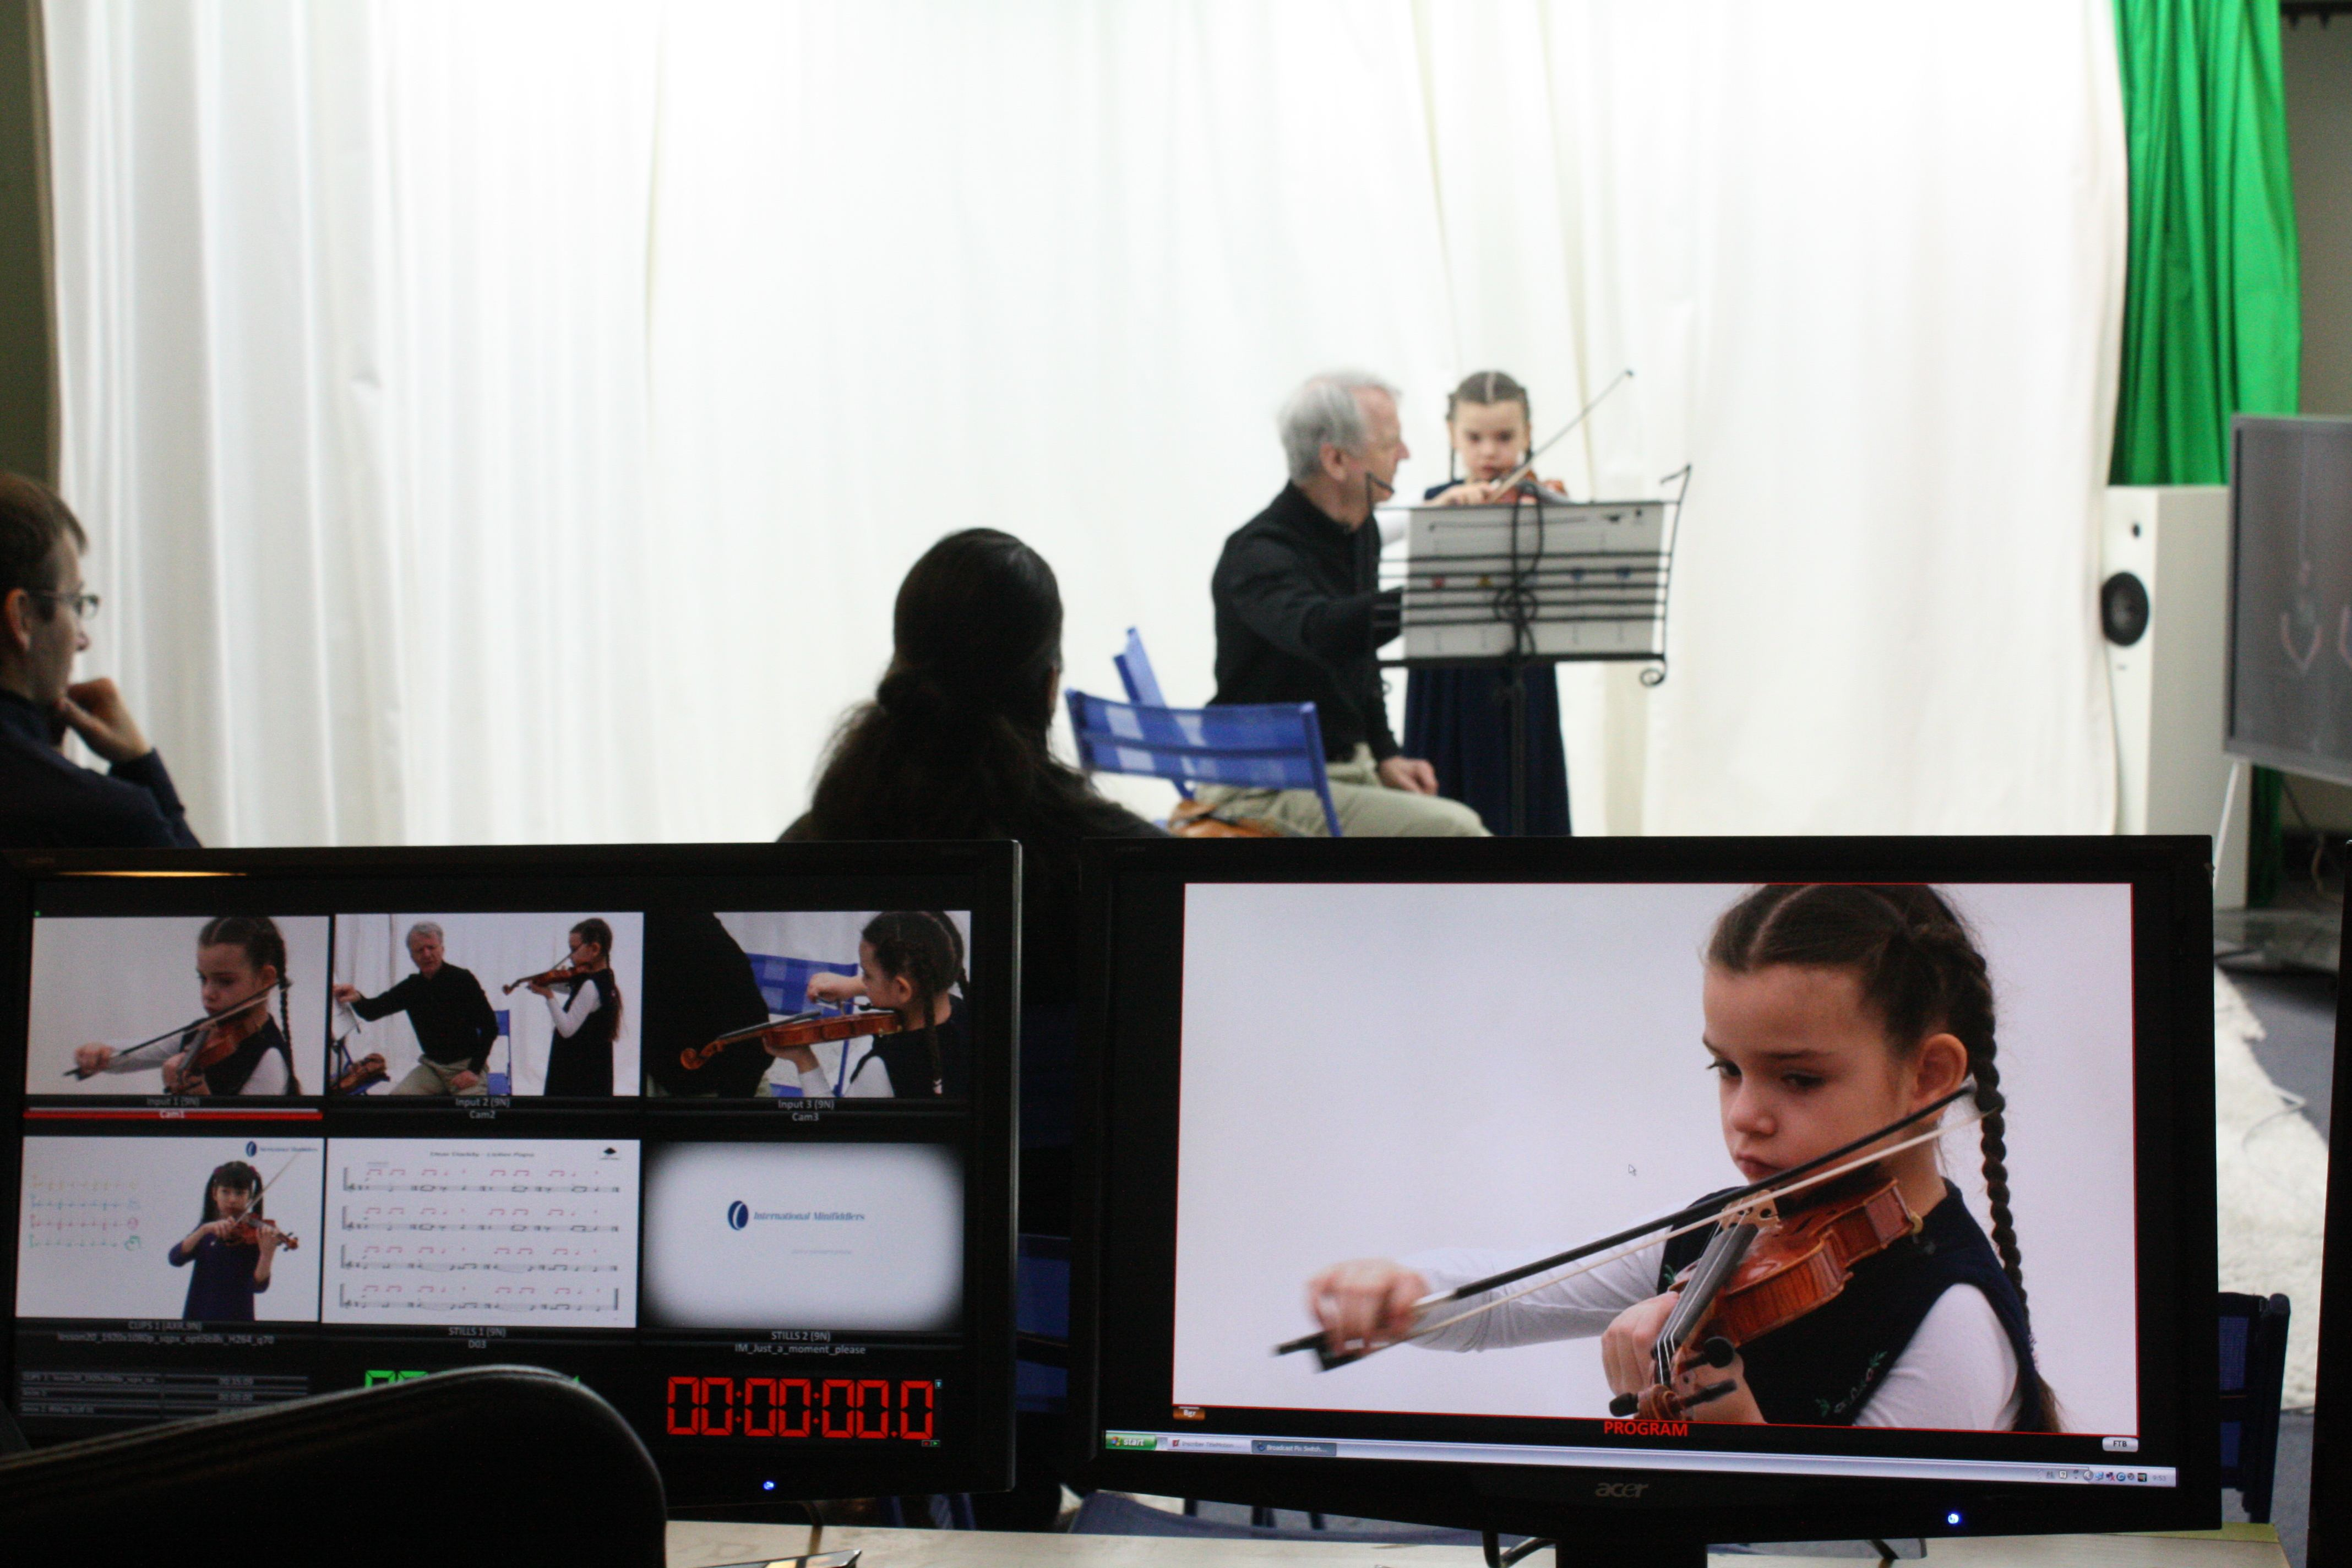 Caprice is a true pioneer in the field of musical distance teaching, having developed distance learning solutions in co-operation with renowned violinist Pinchas Zukerman since 1997.